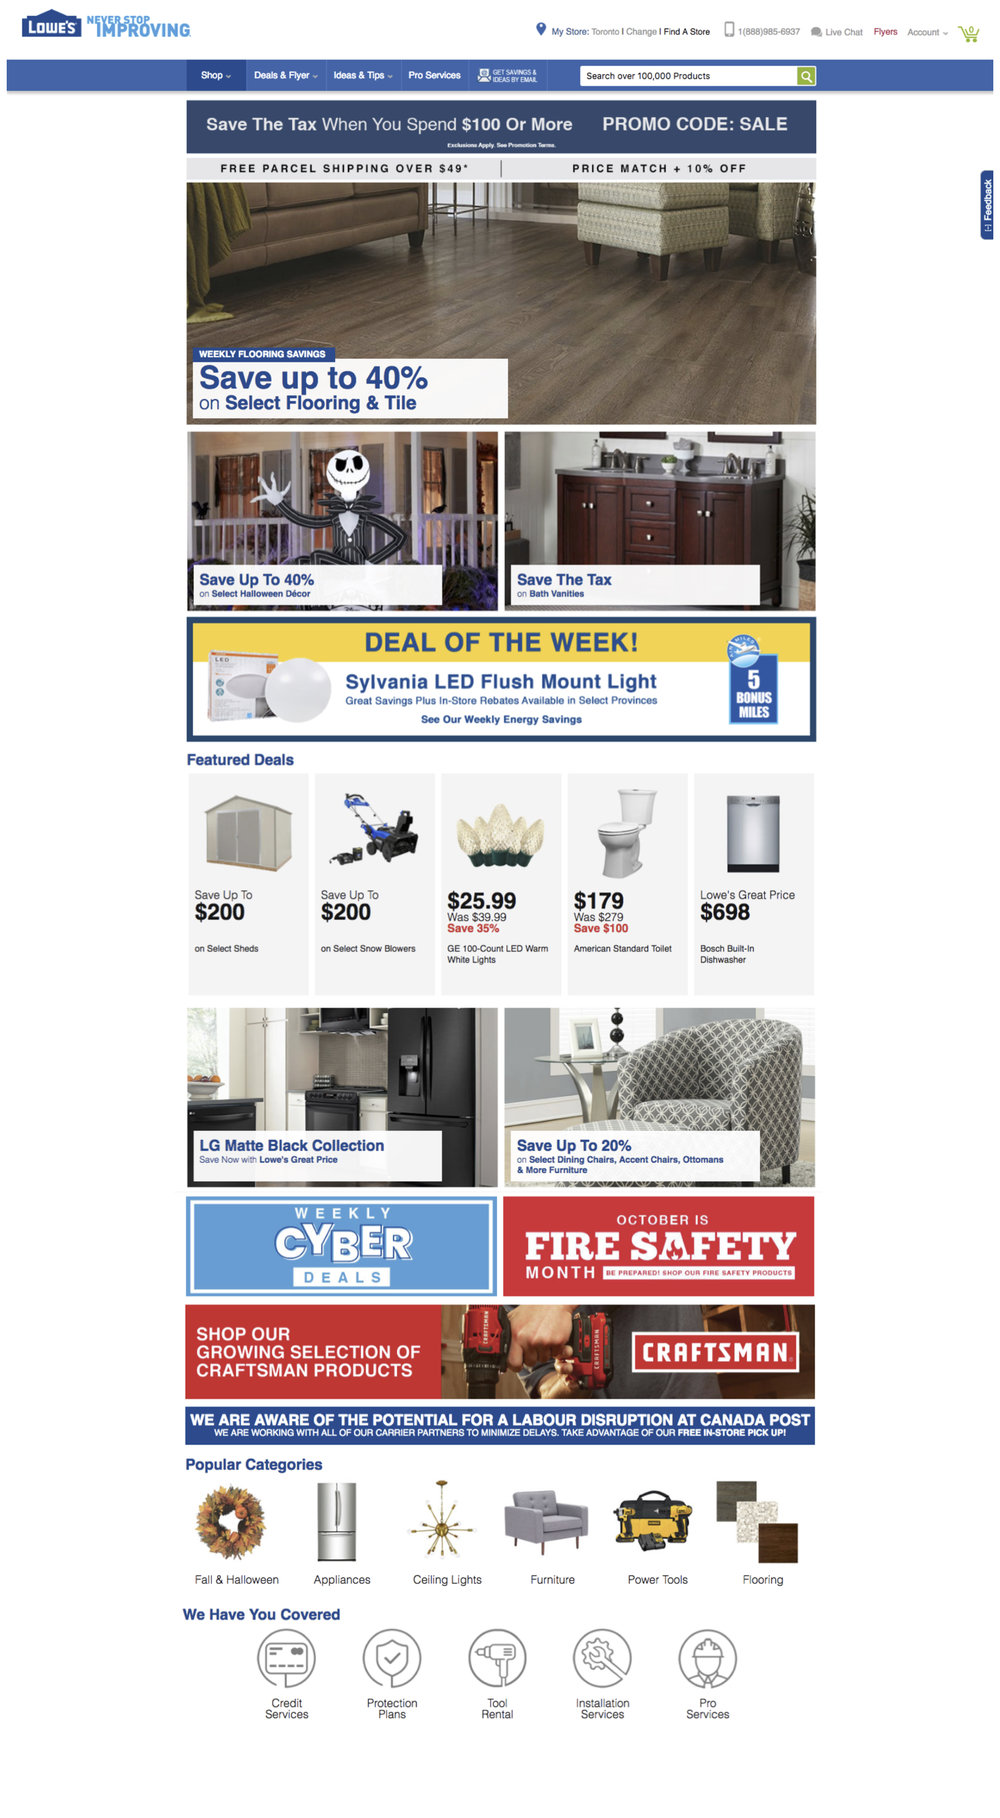 Client: Lowe's Canada  Homepage re-design, 2018